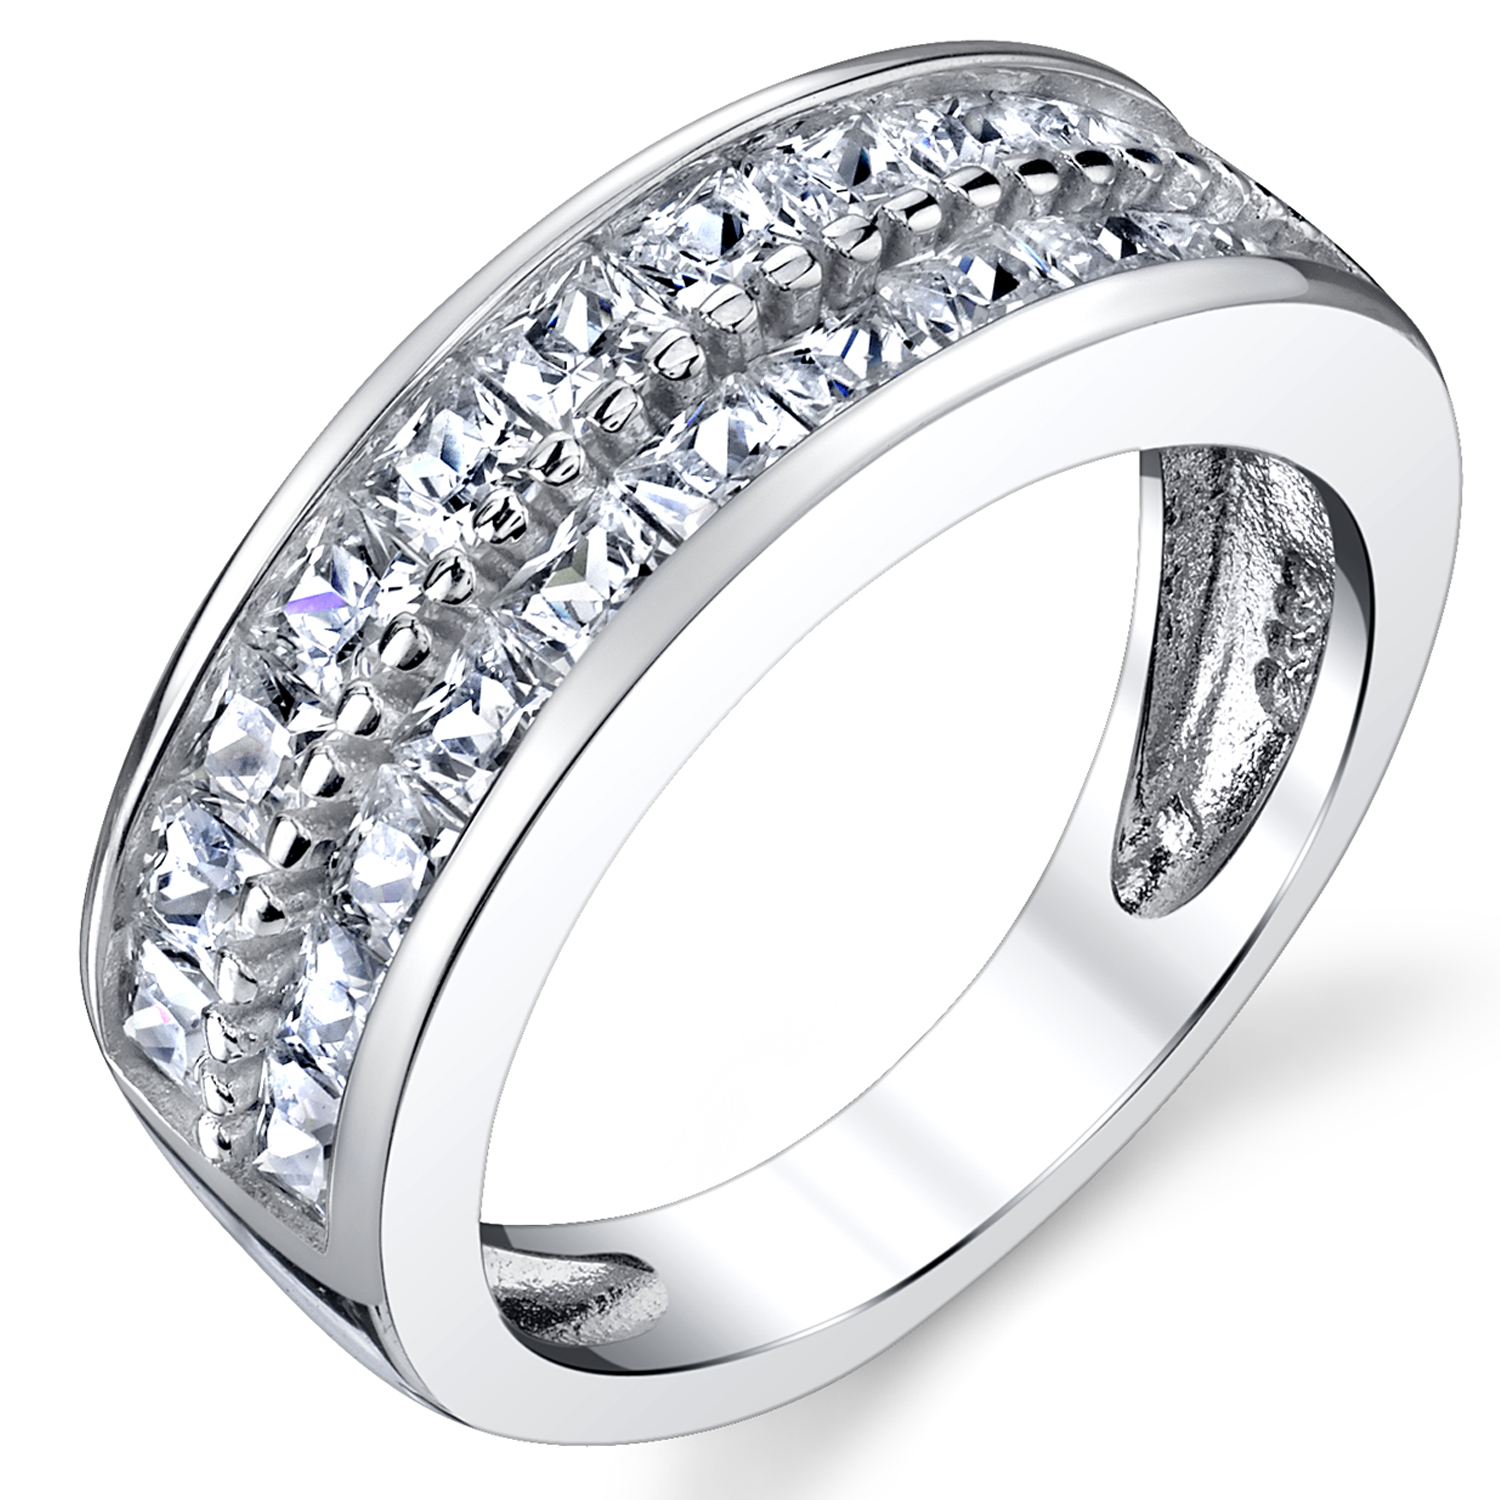 Double Row Princess Cut Men's Sterling Silver Wedding Band Engagement Ring with Cubic Zirconia 7.5mm Sizes 7 to 13